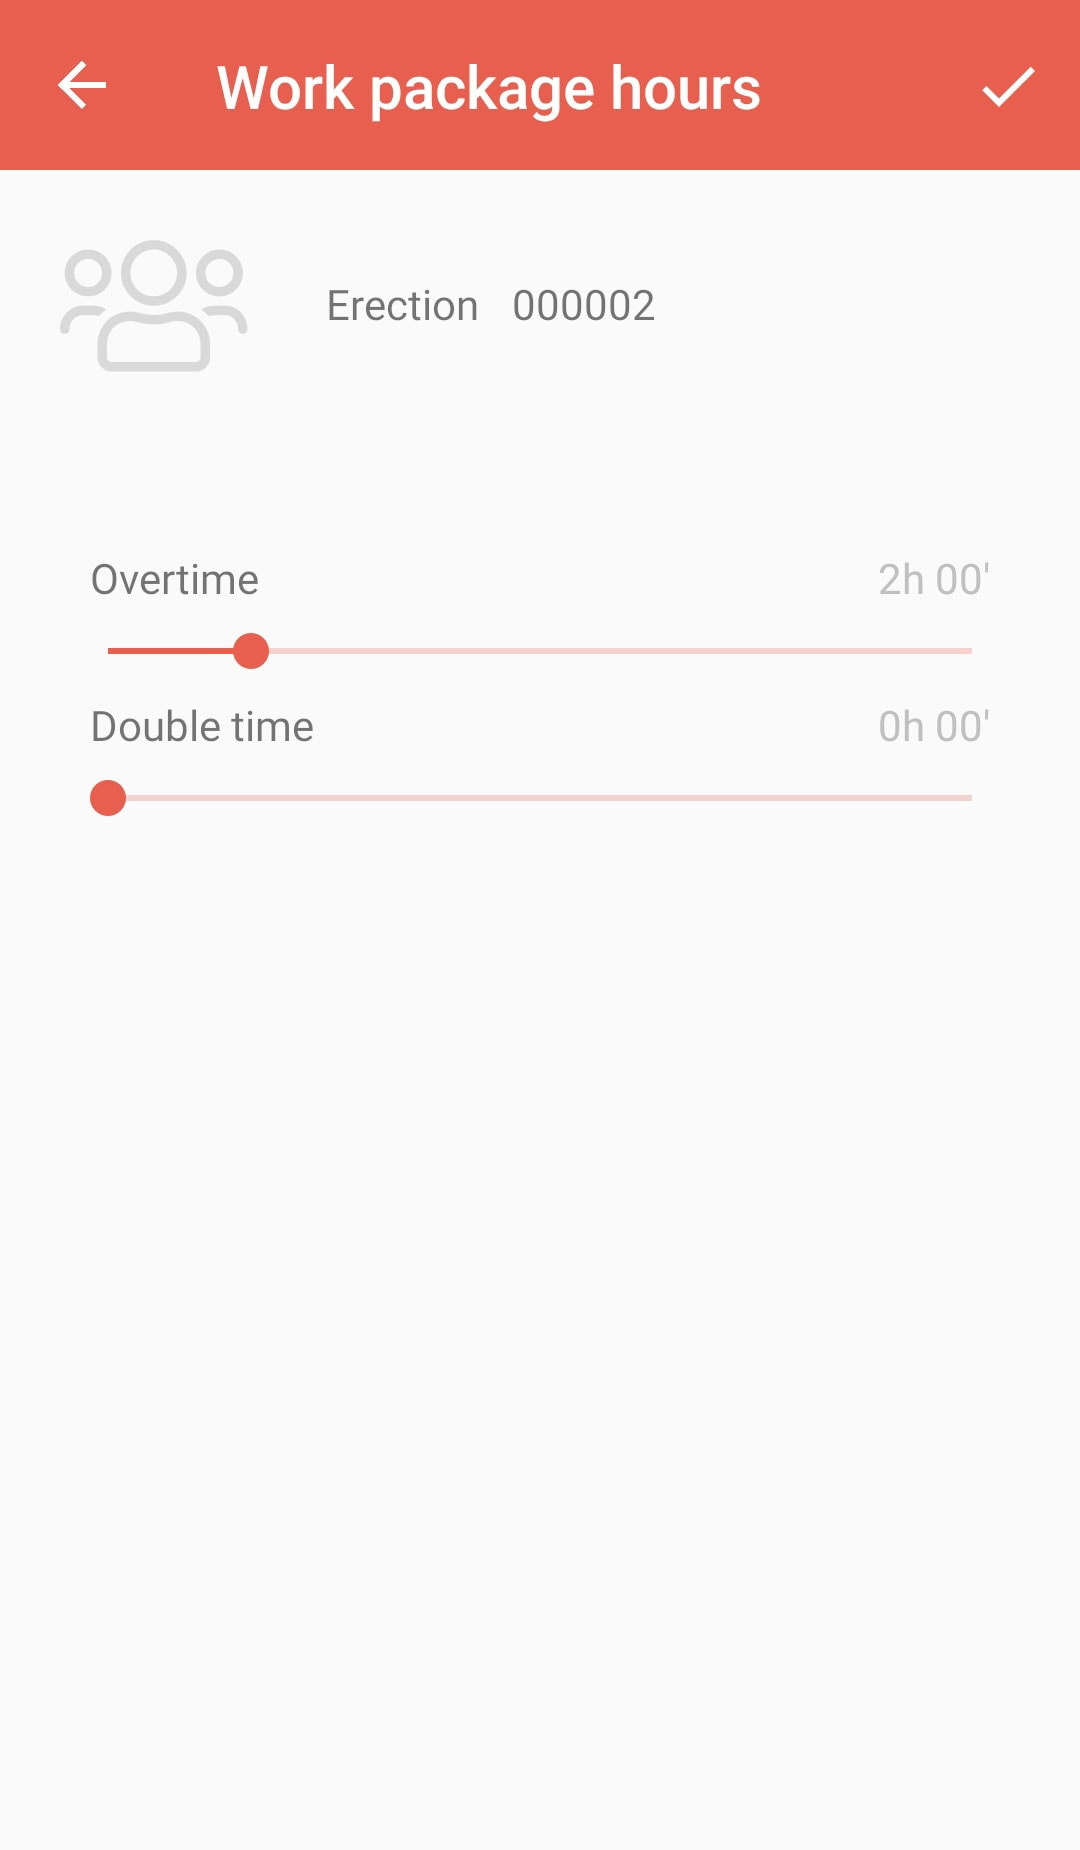 PERIpath Mobile App | Time recording | Work package hours